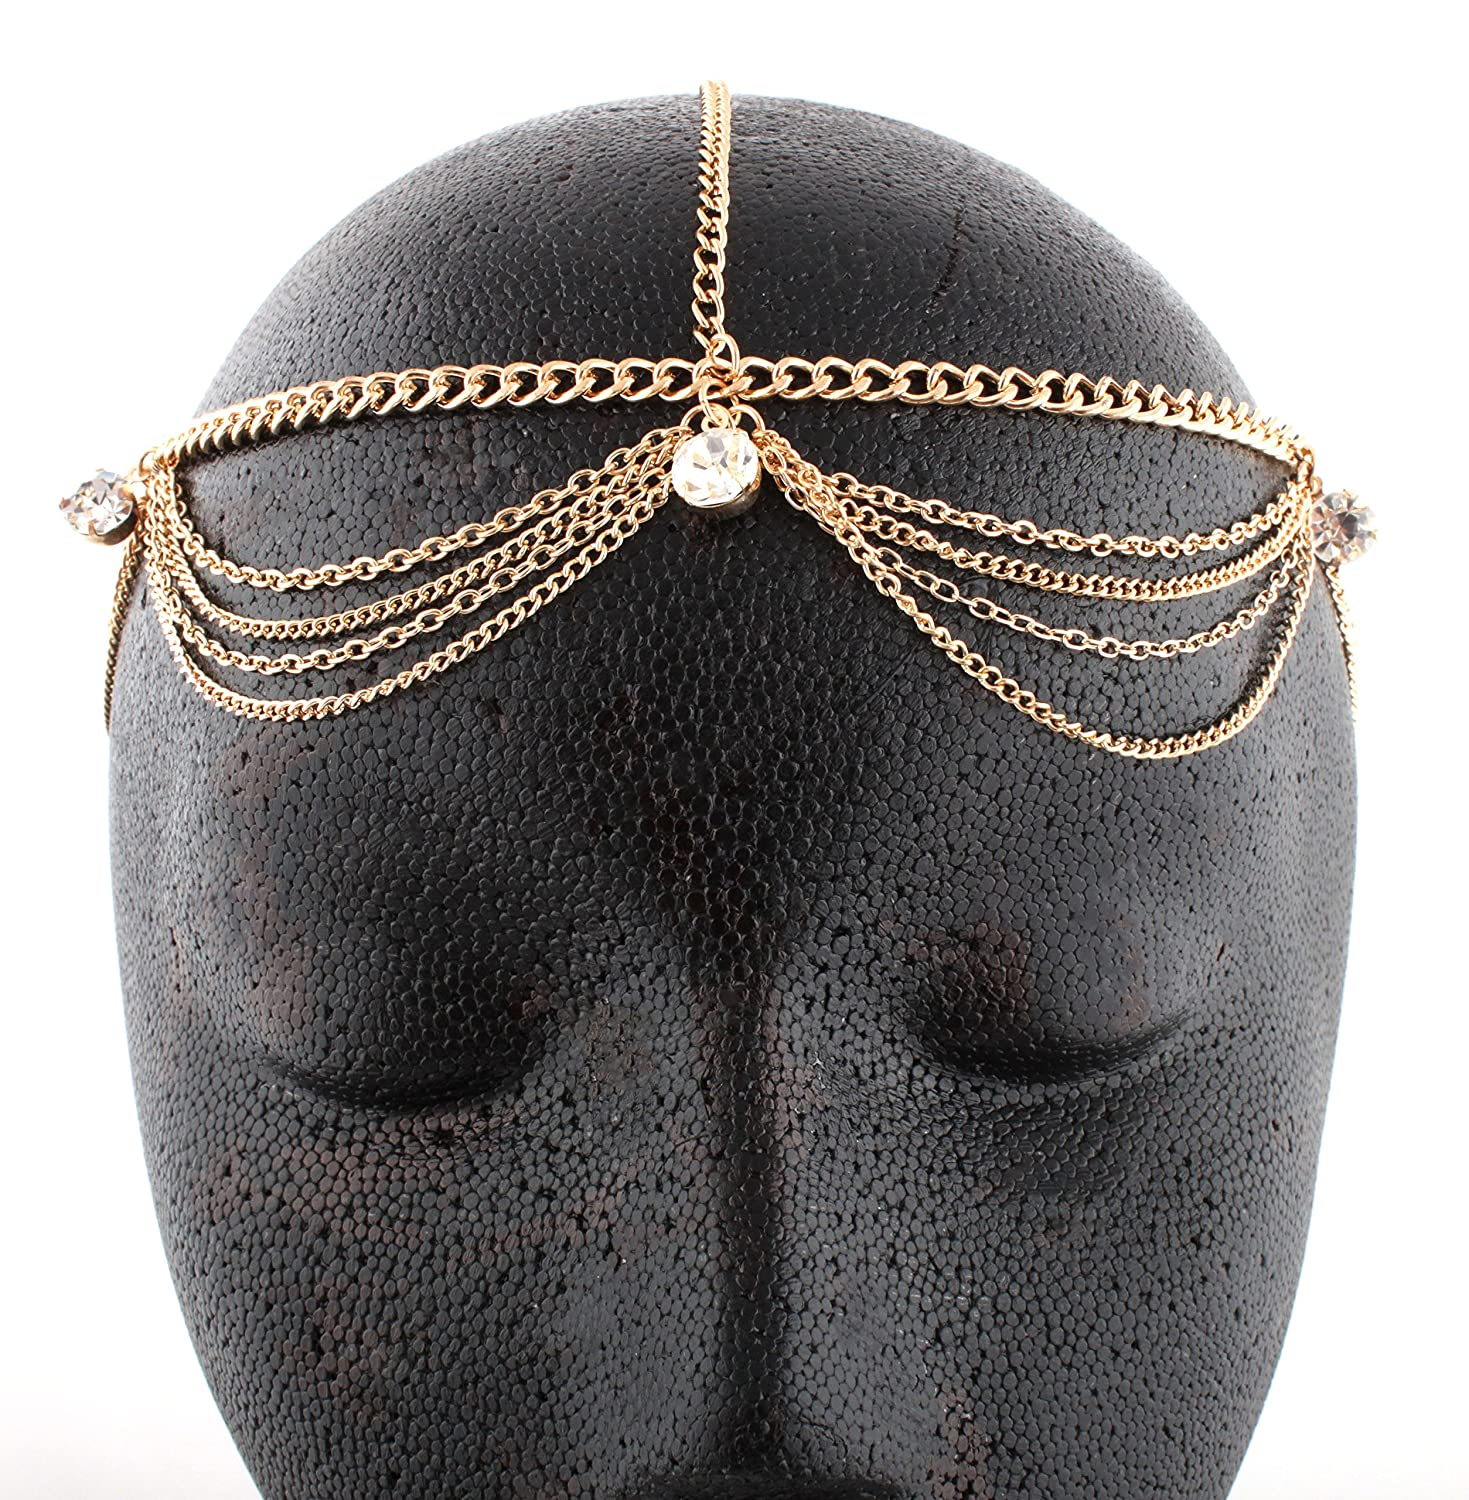 Goldtone Metal Head Chain with Studs (J-20)